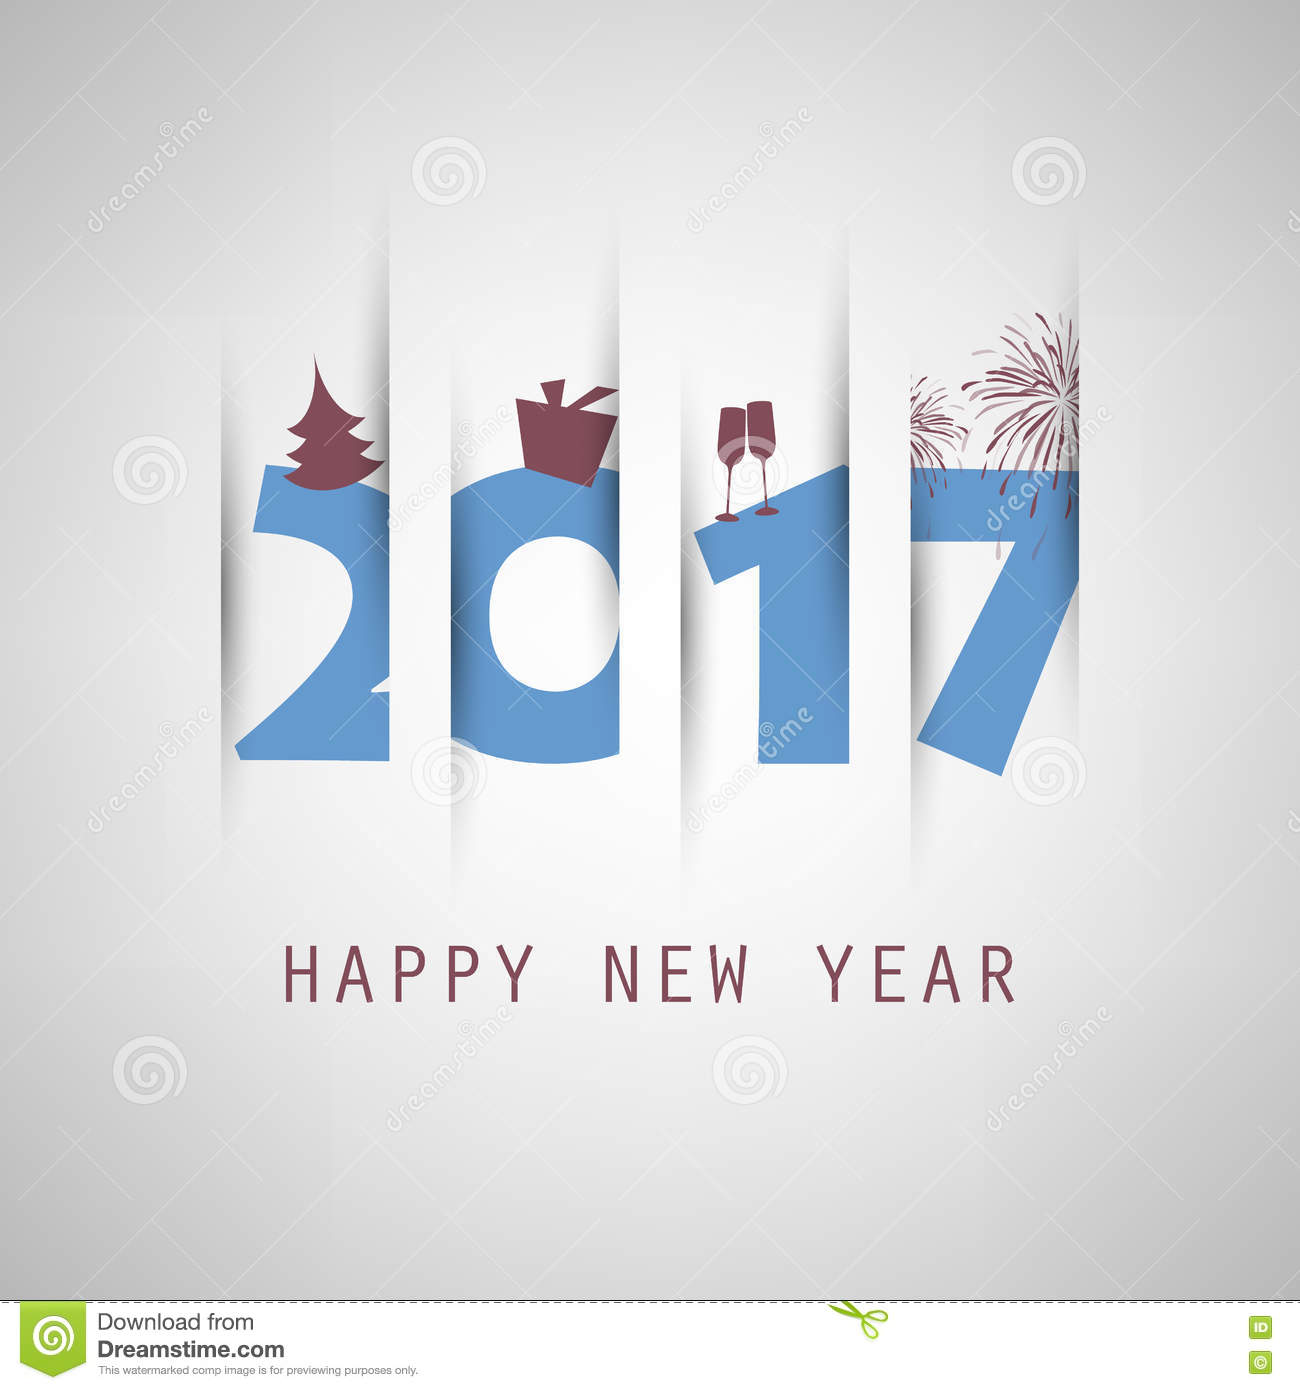 best wishes simple blue new year card cover or background creative design template with